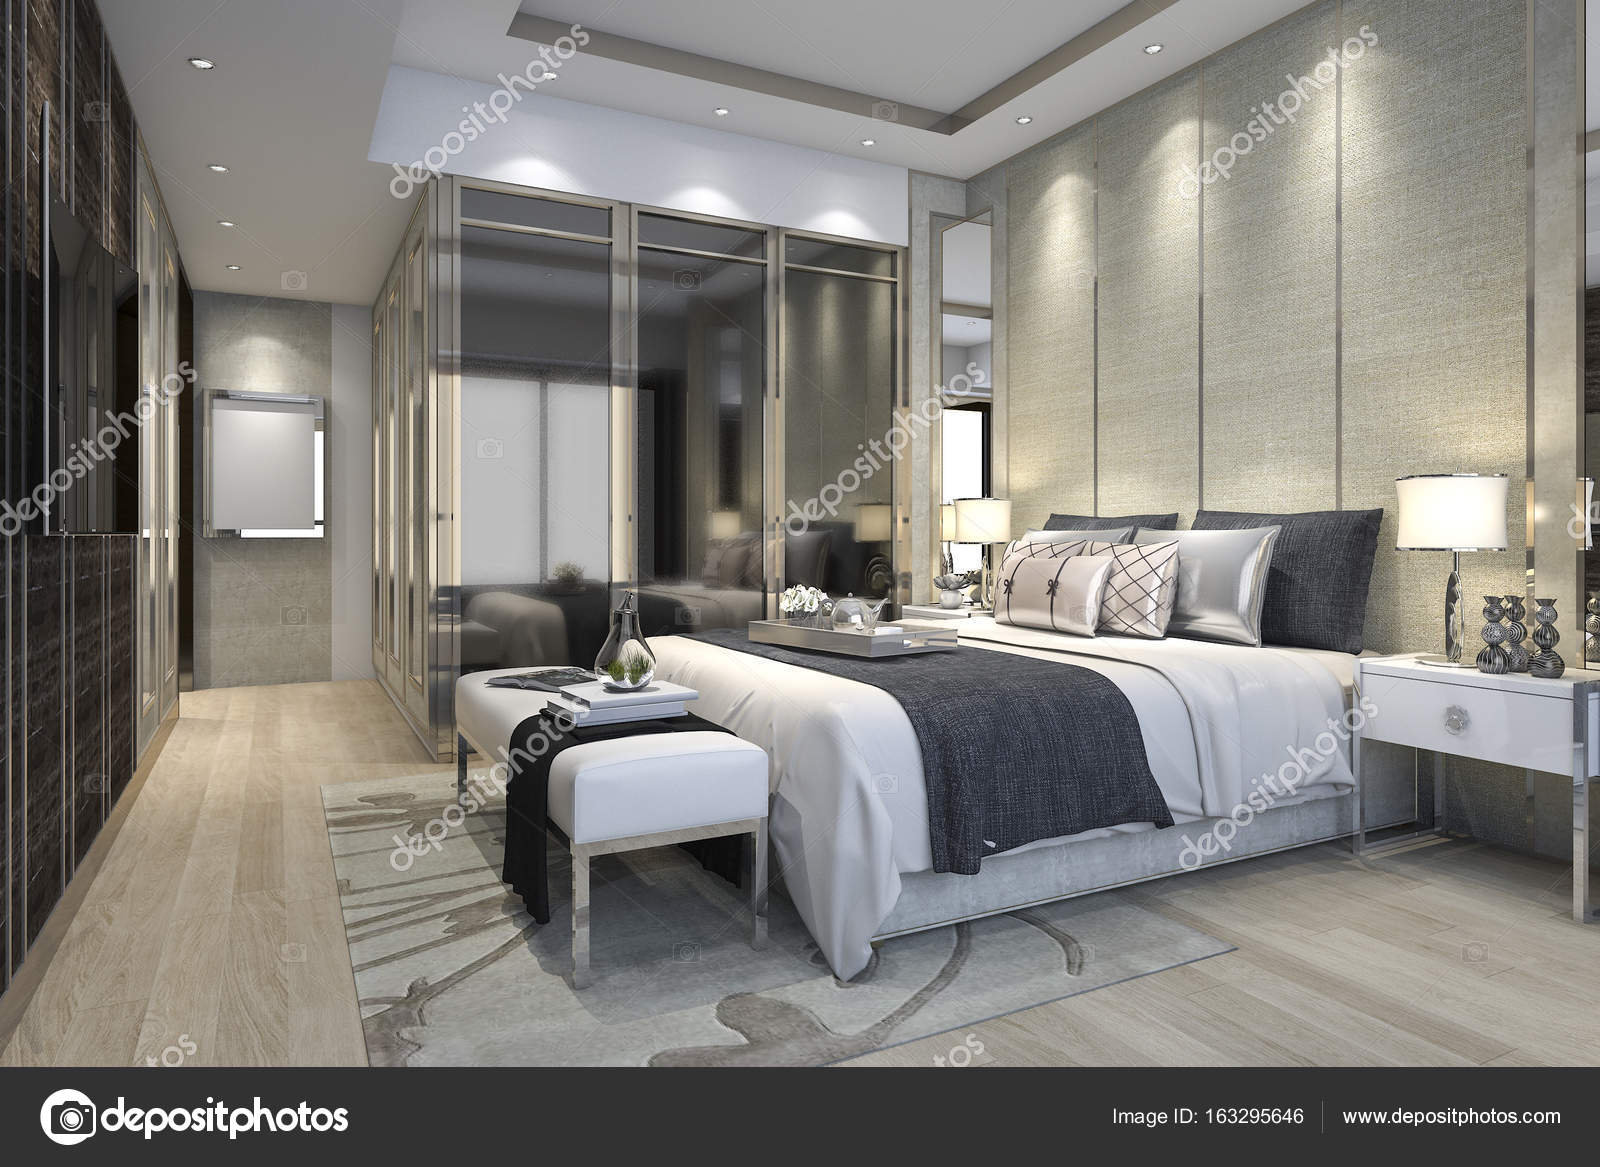 marvellous modern style hotel room bathroom 3d house free | 3d rendering luxury modern bedroom suite in hotel with ...